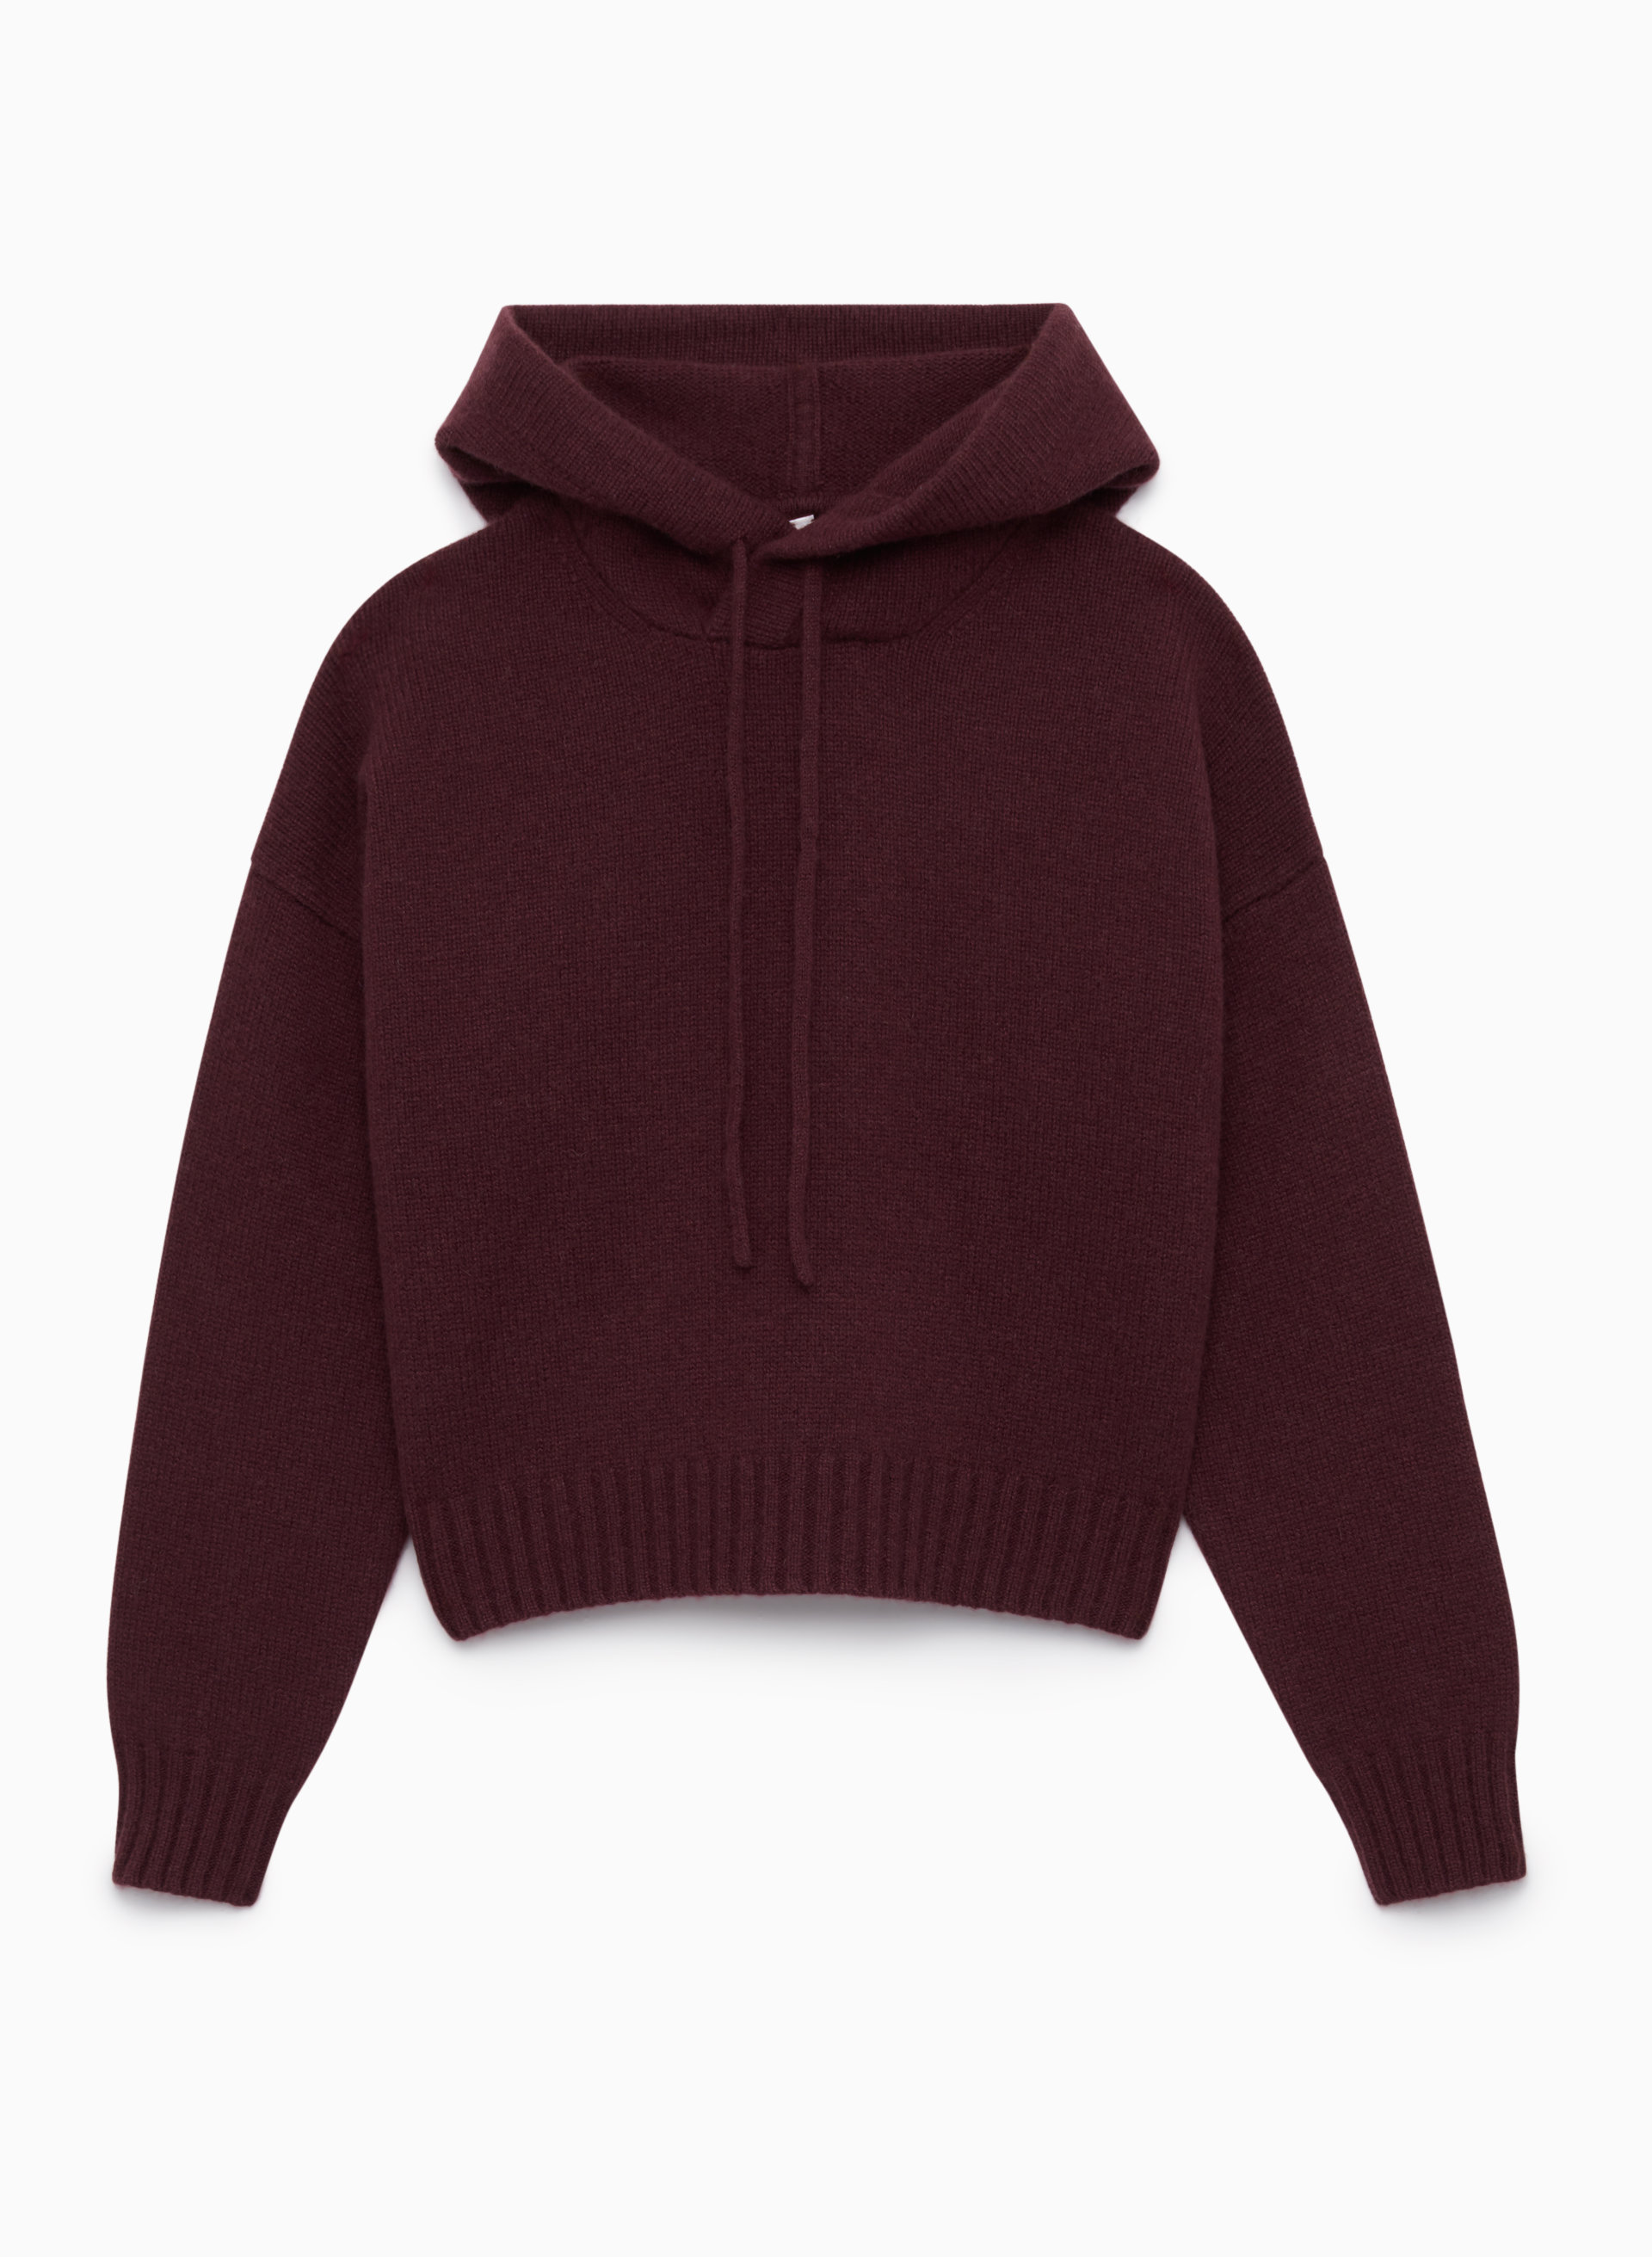 A cranberry-hued cashmere cropped hoodie is festive and fun. - Aritzia